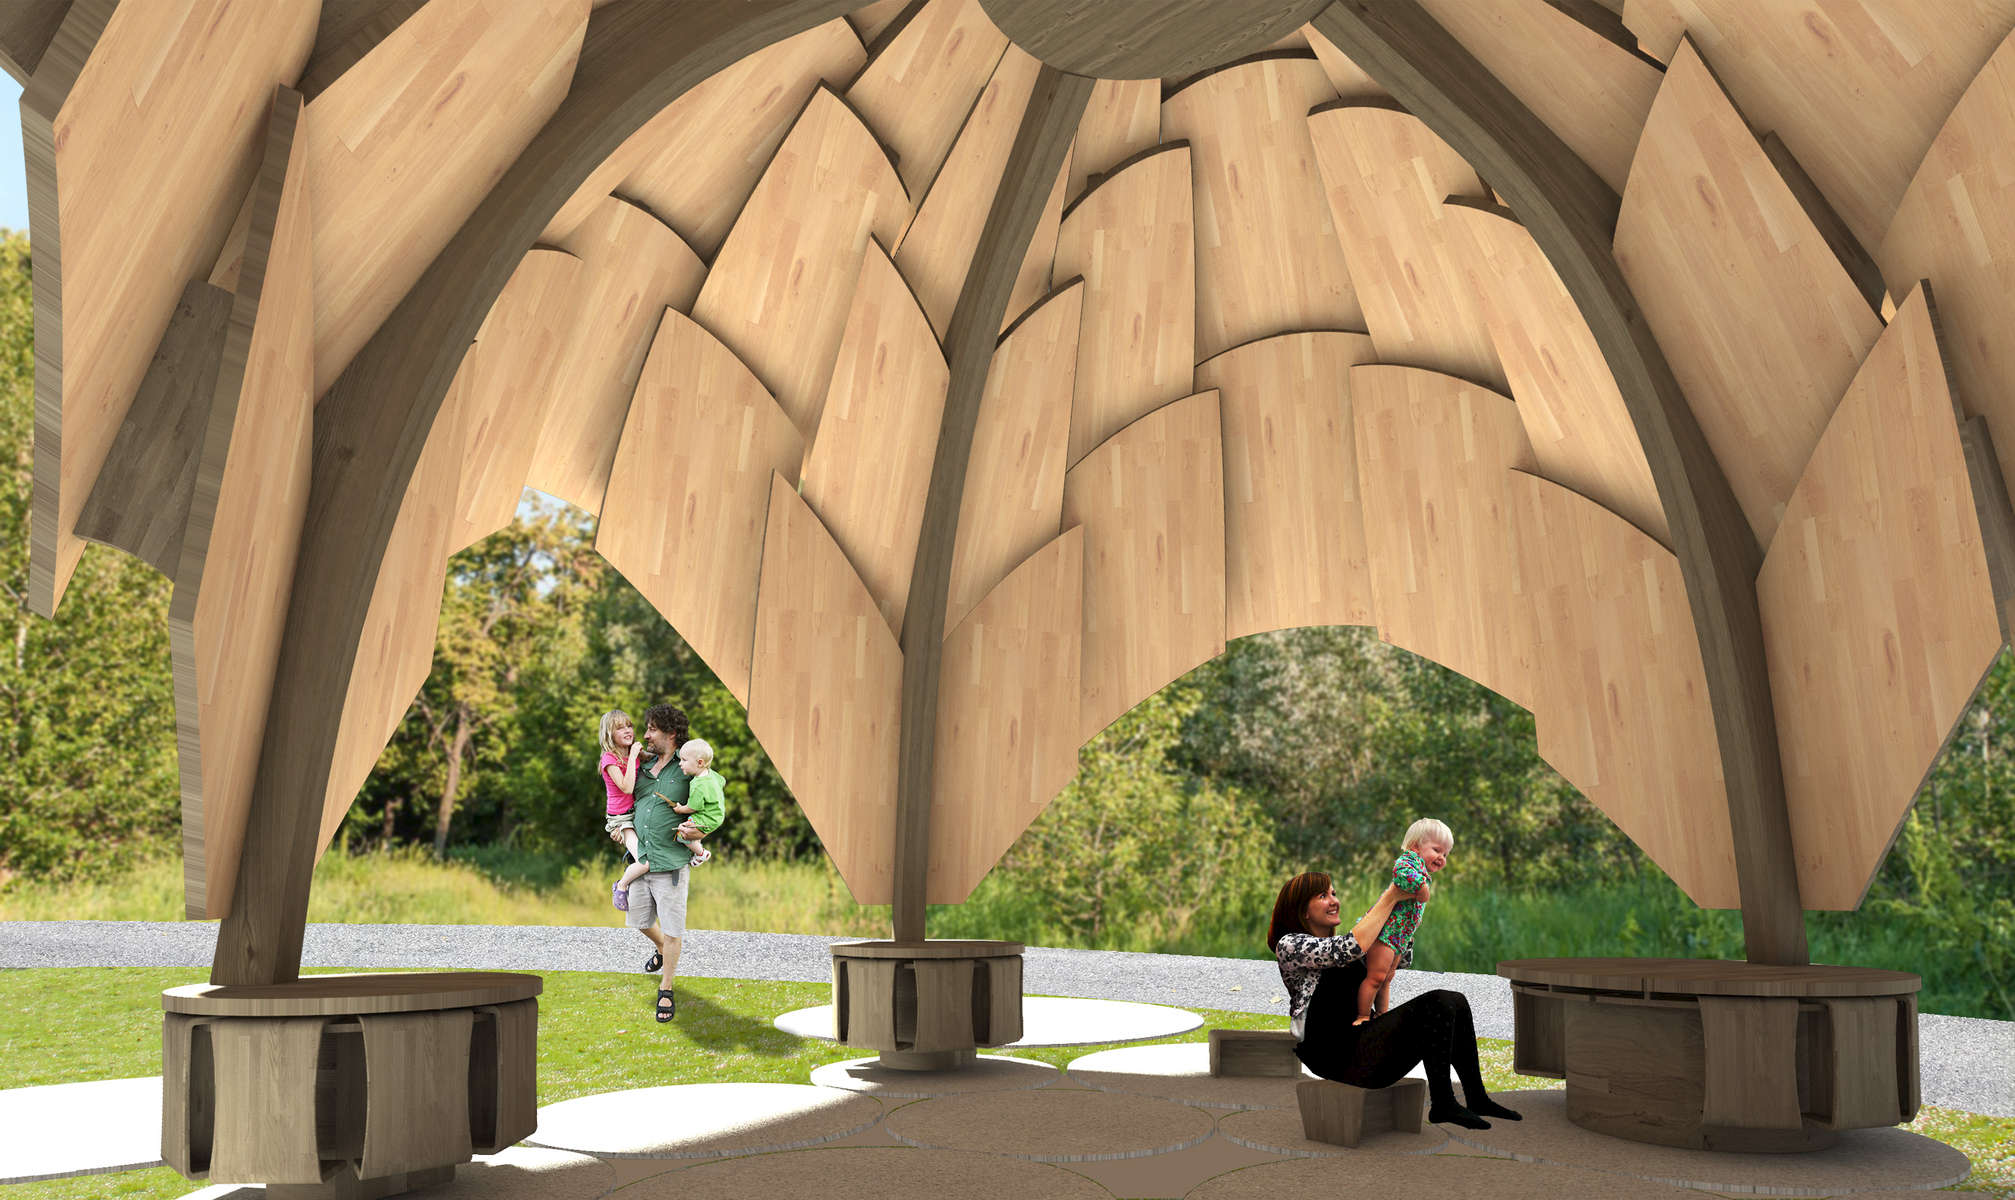 IKD has designed a Cedar CLT permanent educational Pavillion for the Heritage Museums and Gardens. In development.